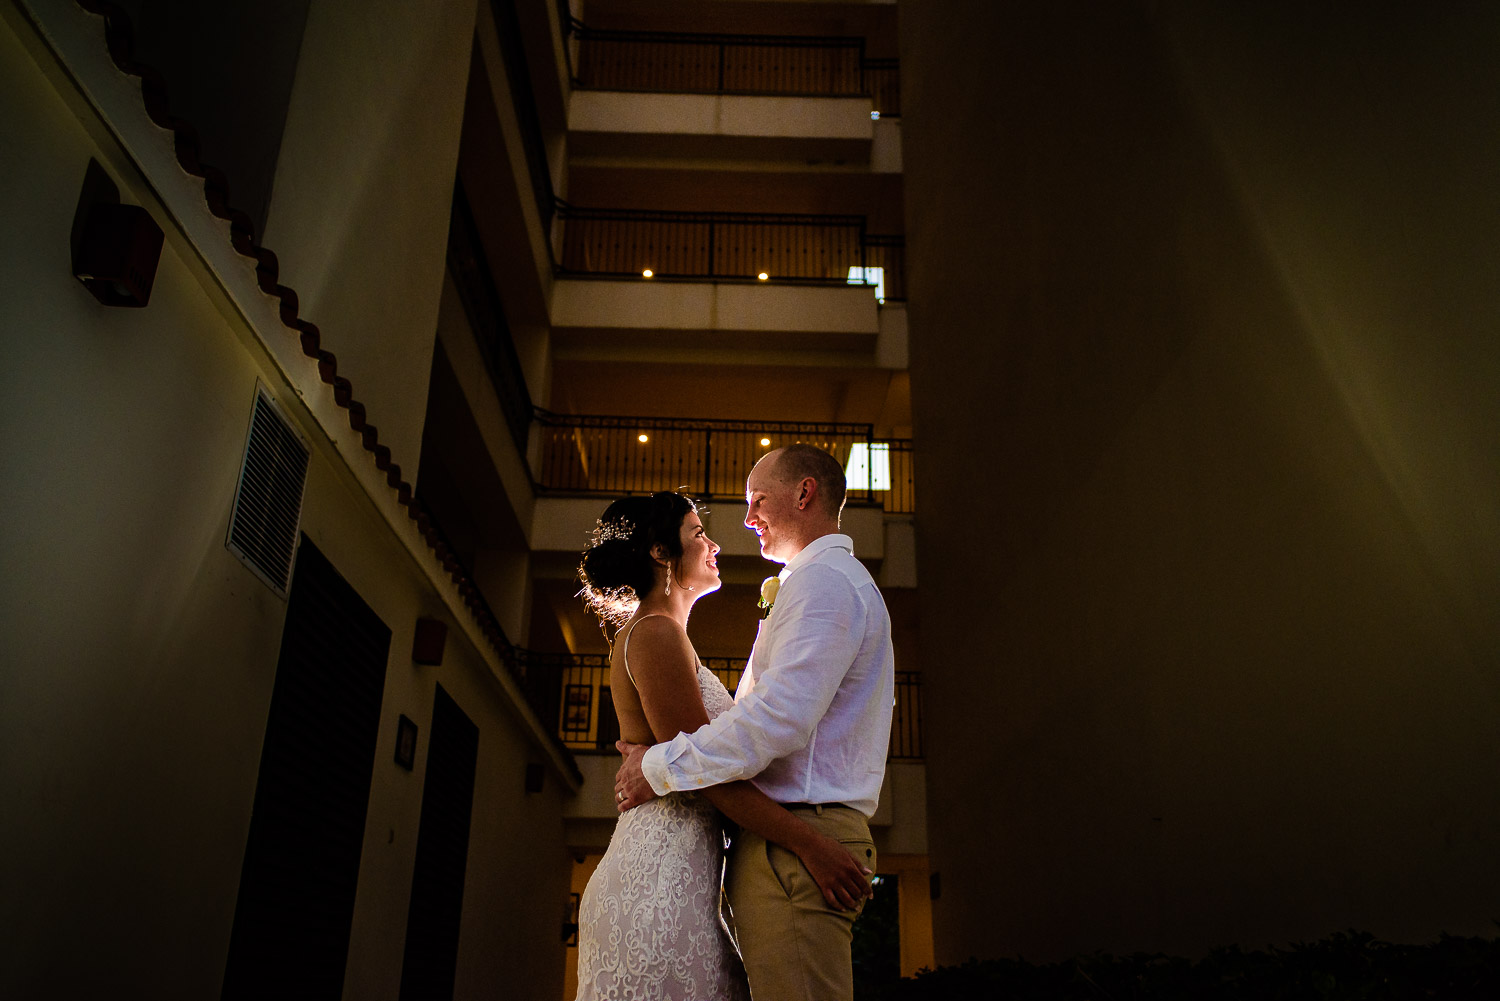 Hyatt-Ziva-Weddings-Wedding-Photos.JPG